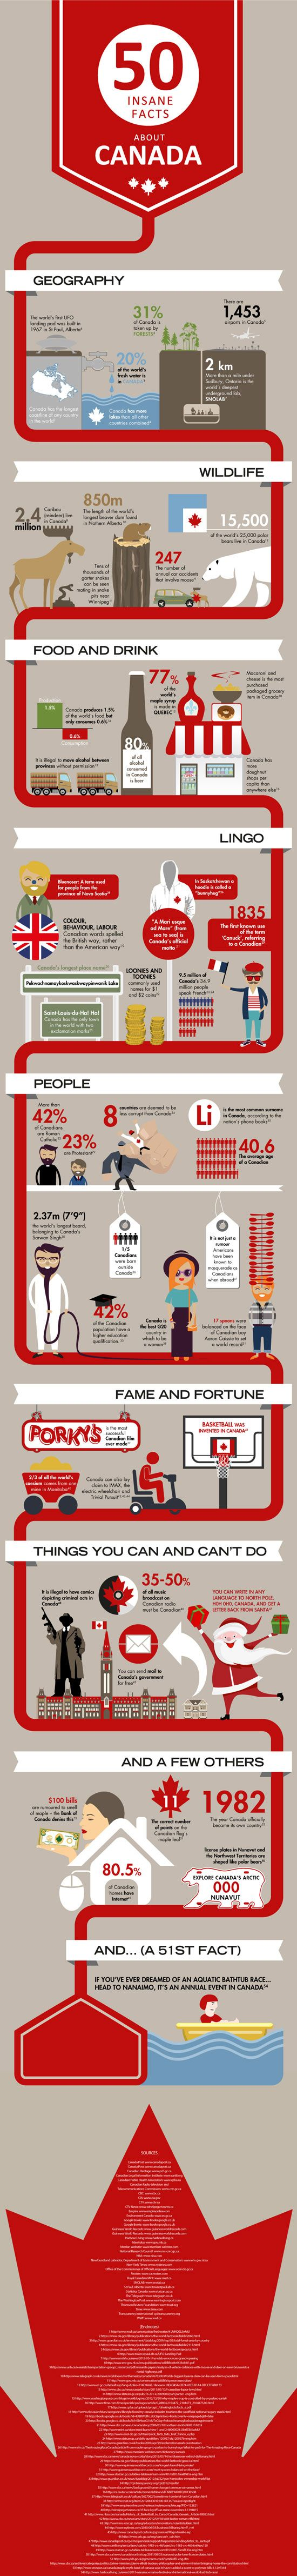 Check out this awesome infographic with 50 Insane Facts About Canada!  (By Neomam Studios)